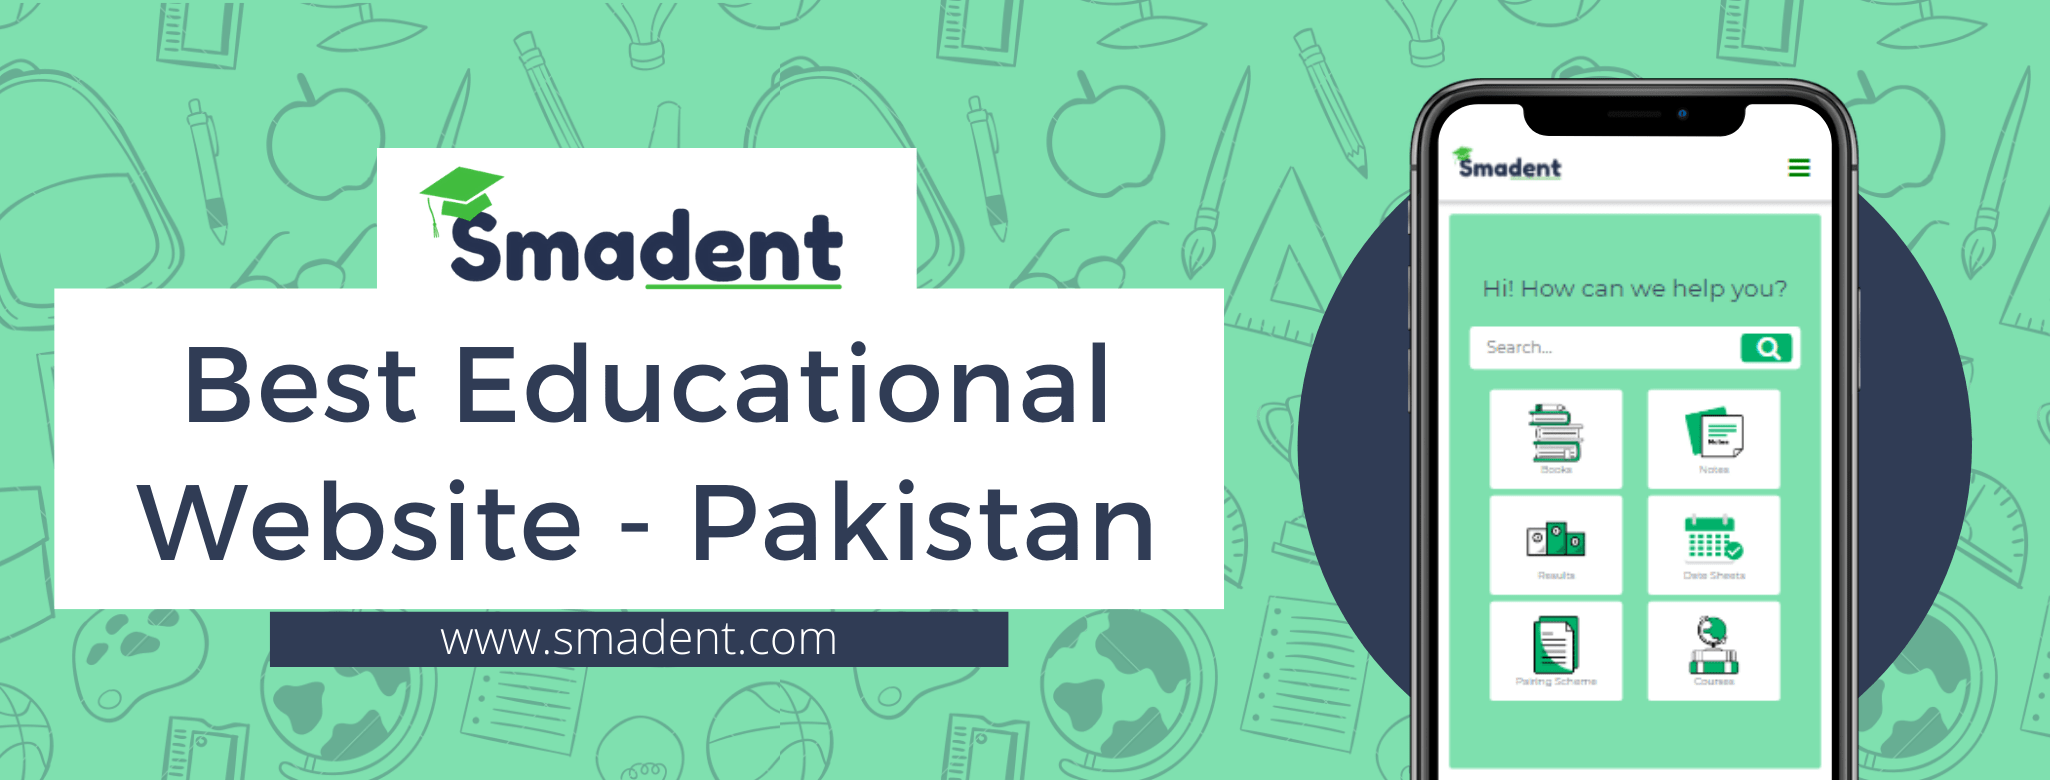 Best Educational website of Pakistan Smadent